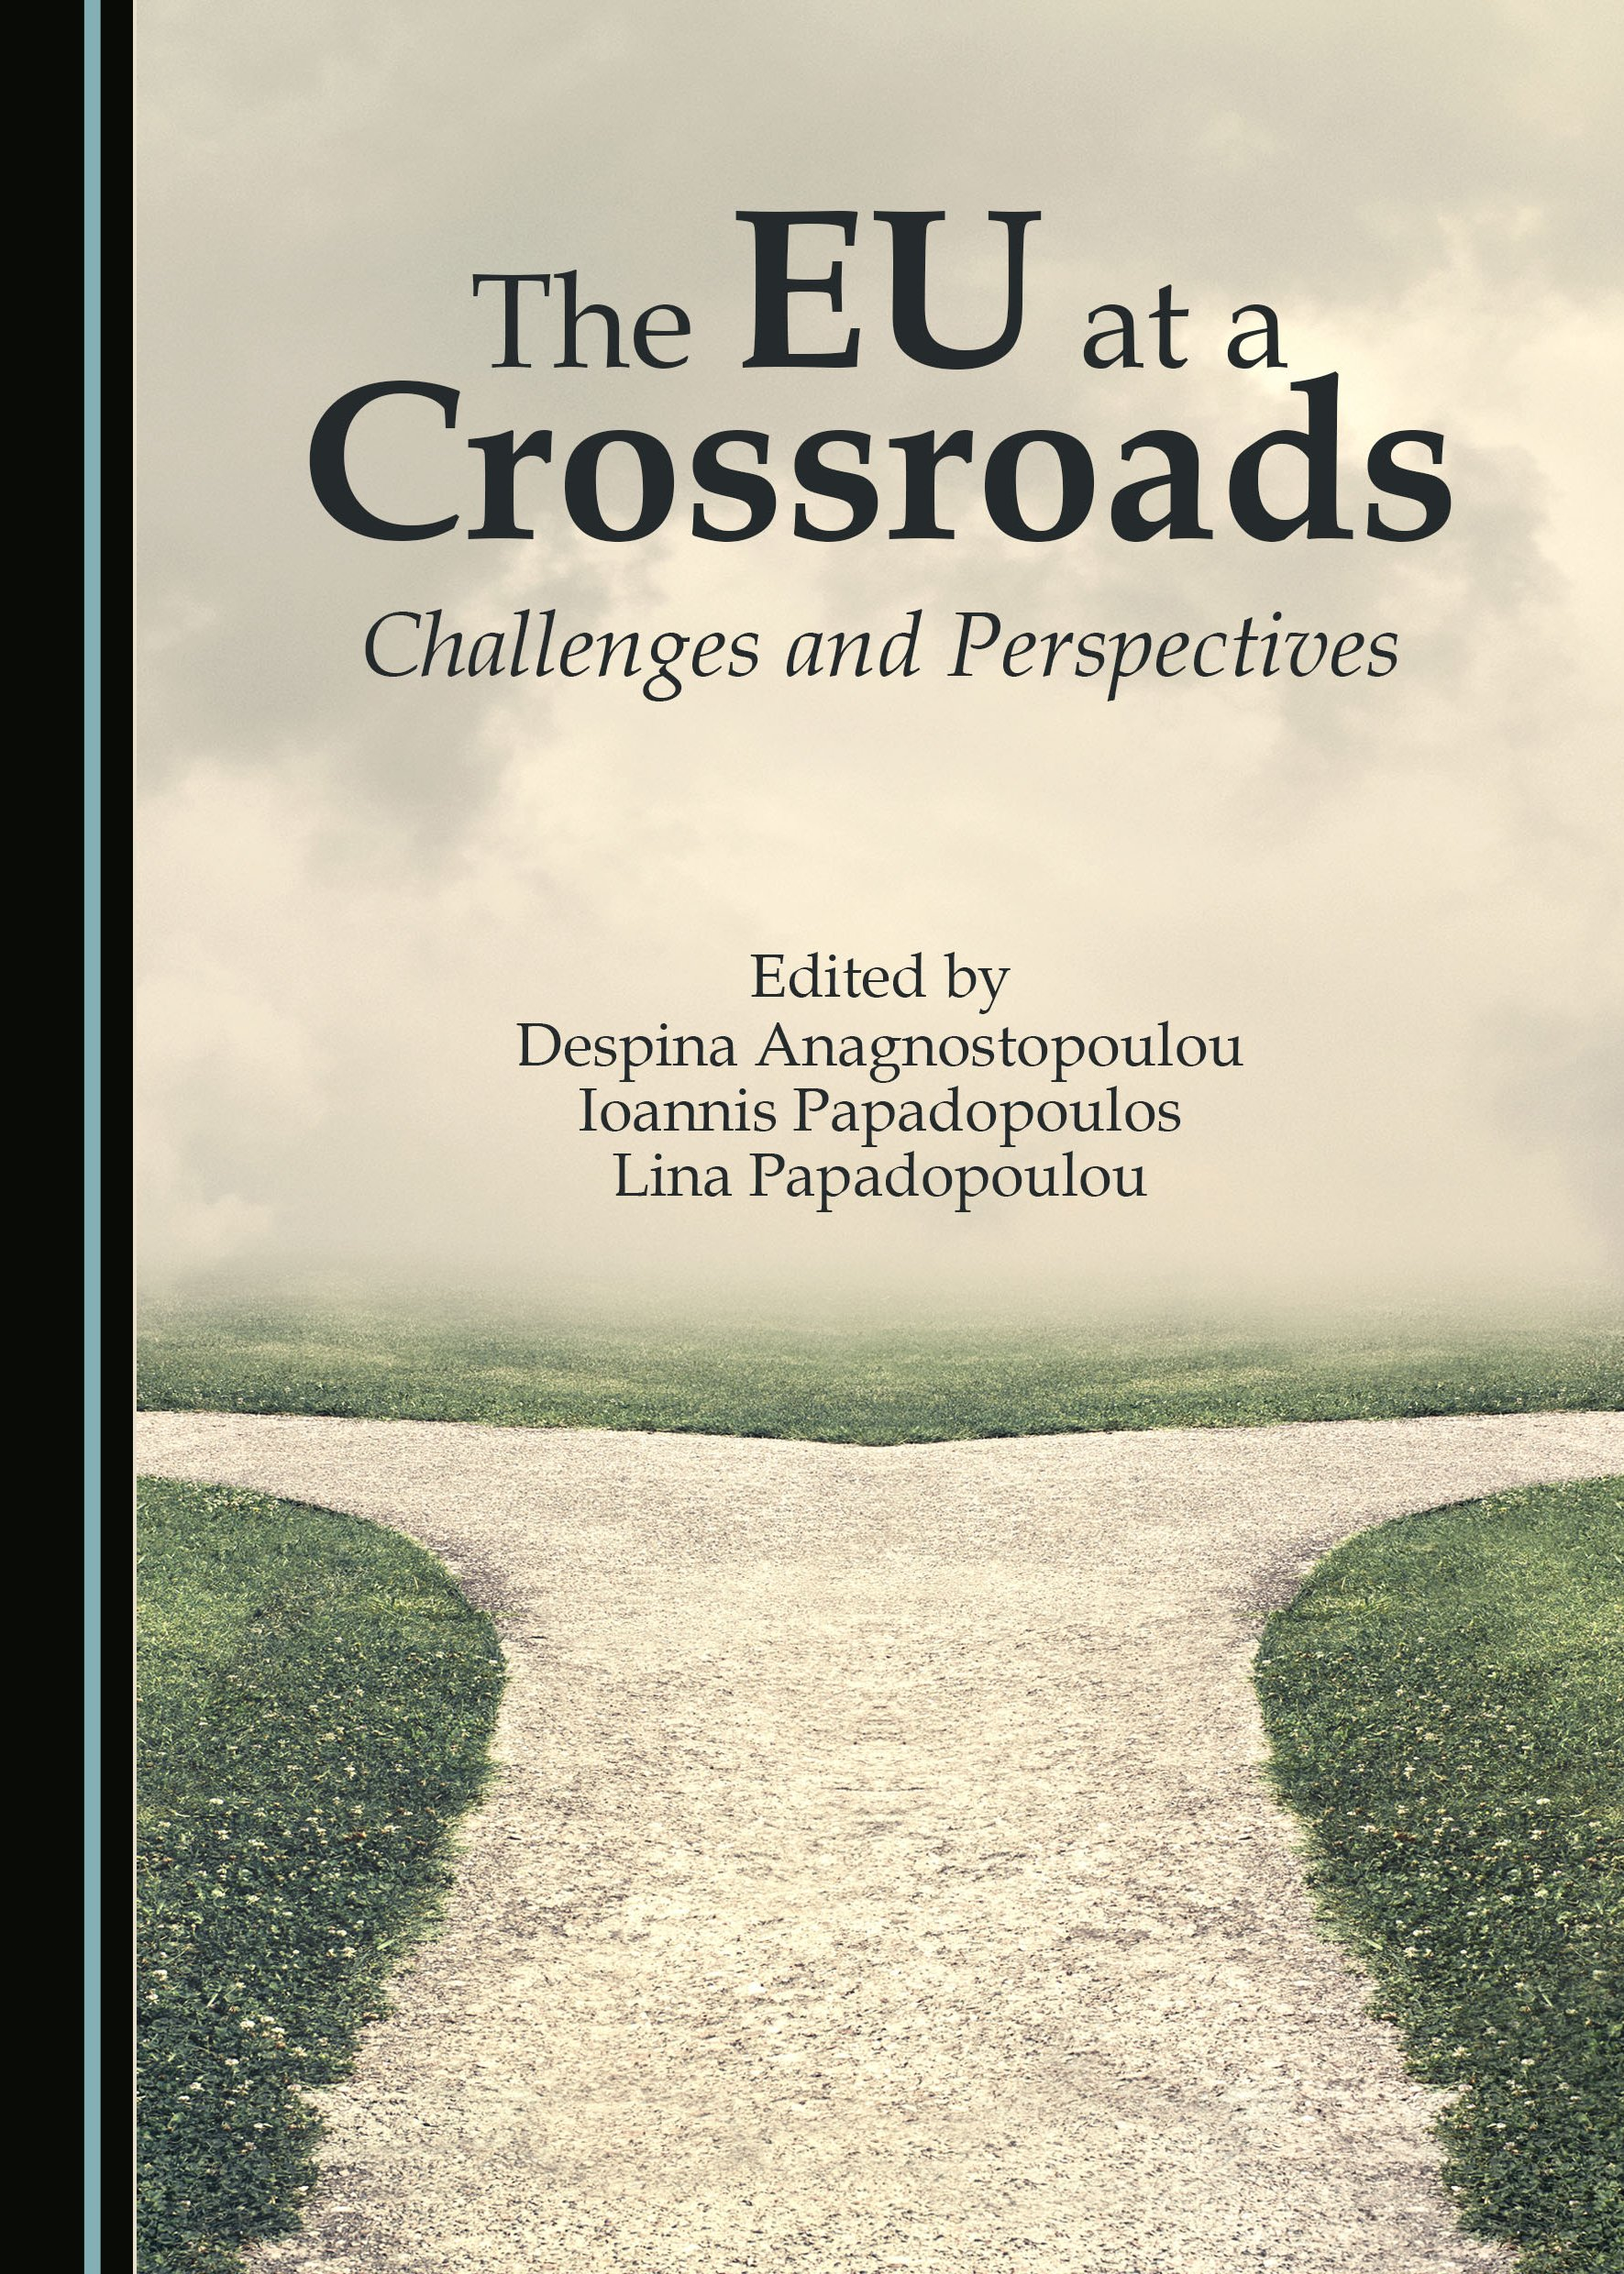 The EU at a Crossroads: Challenges and Perspectives